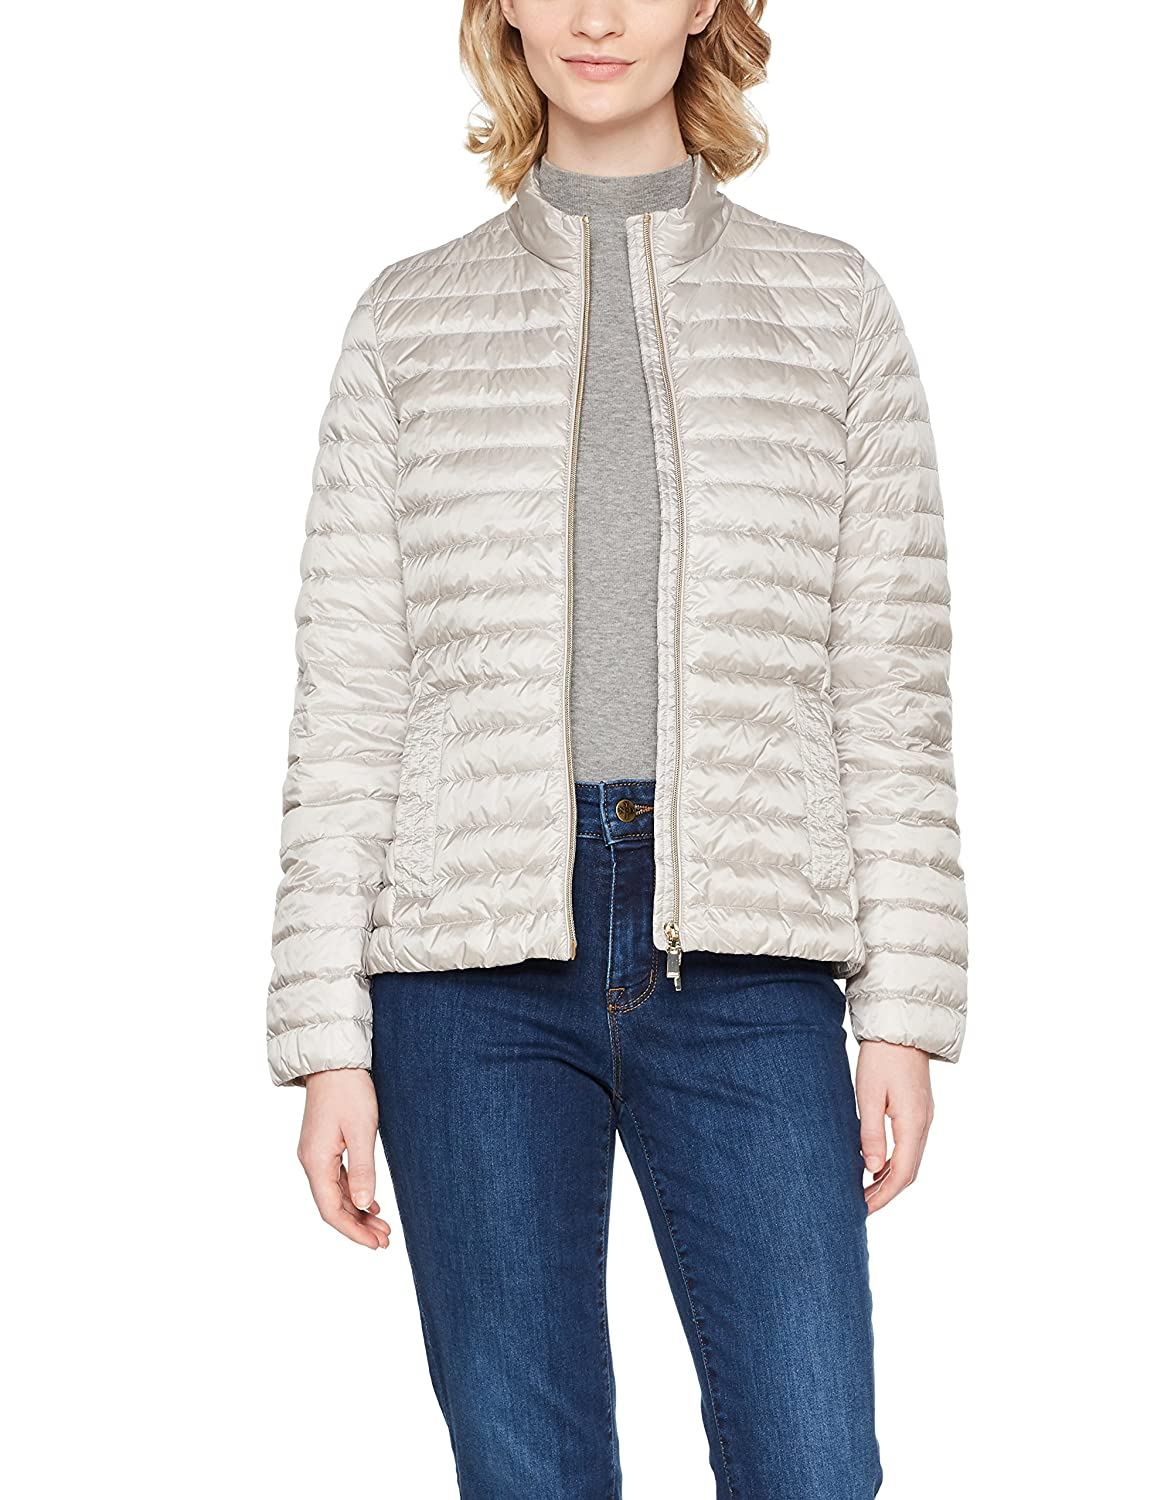 Geox Woman Down Jacket Chaqueta para Mujer